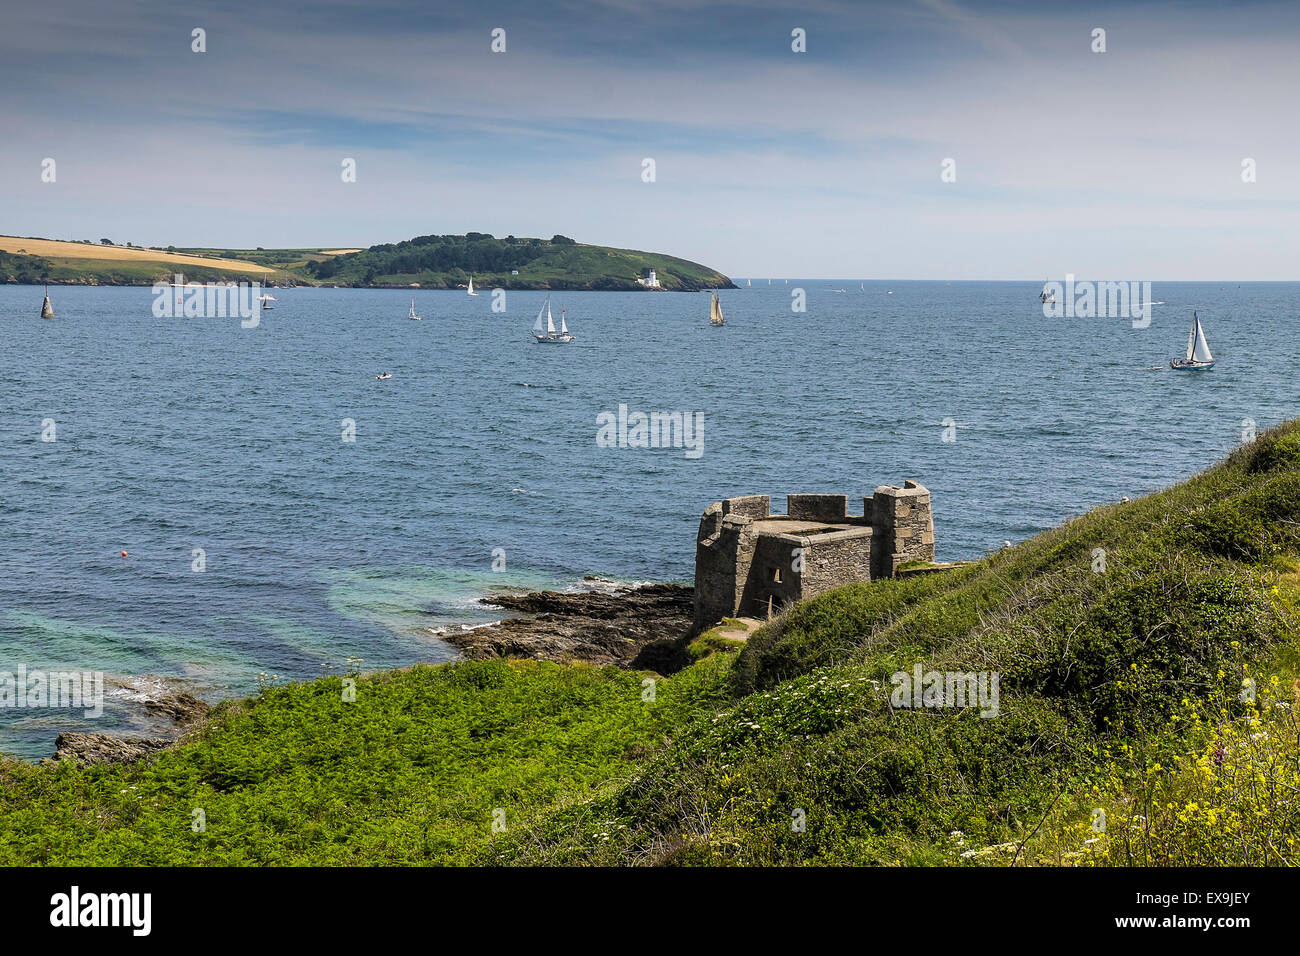 The entrance to the Carrick Roads at Falmouth, Cornwall. Stock Photo